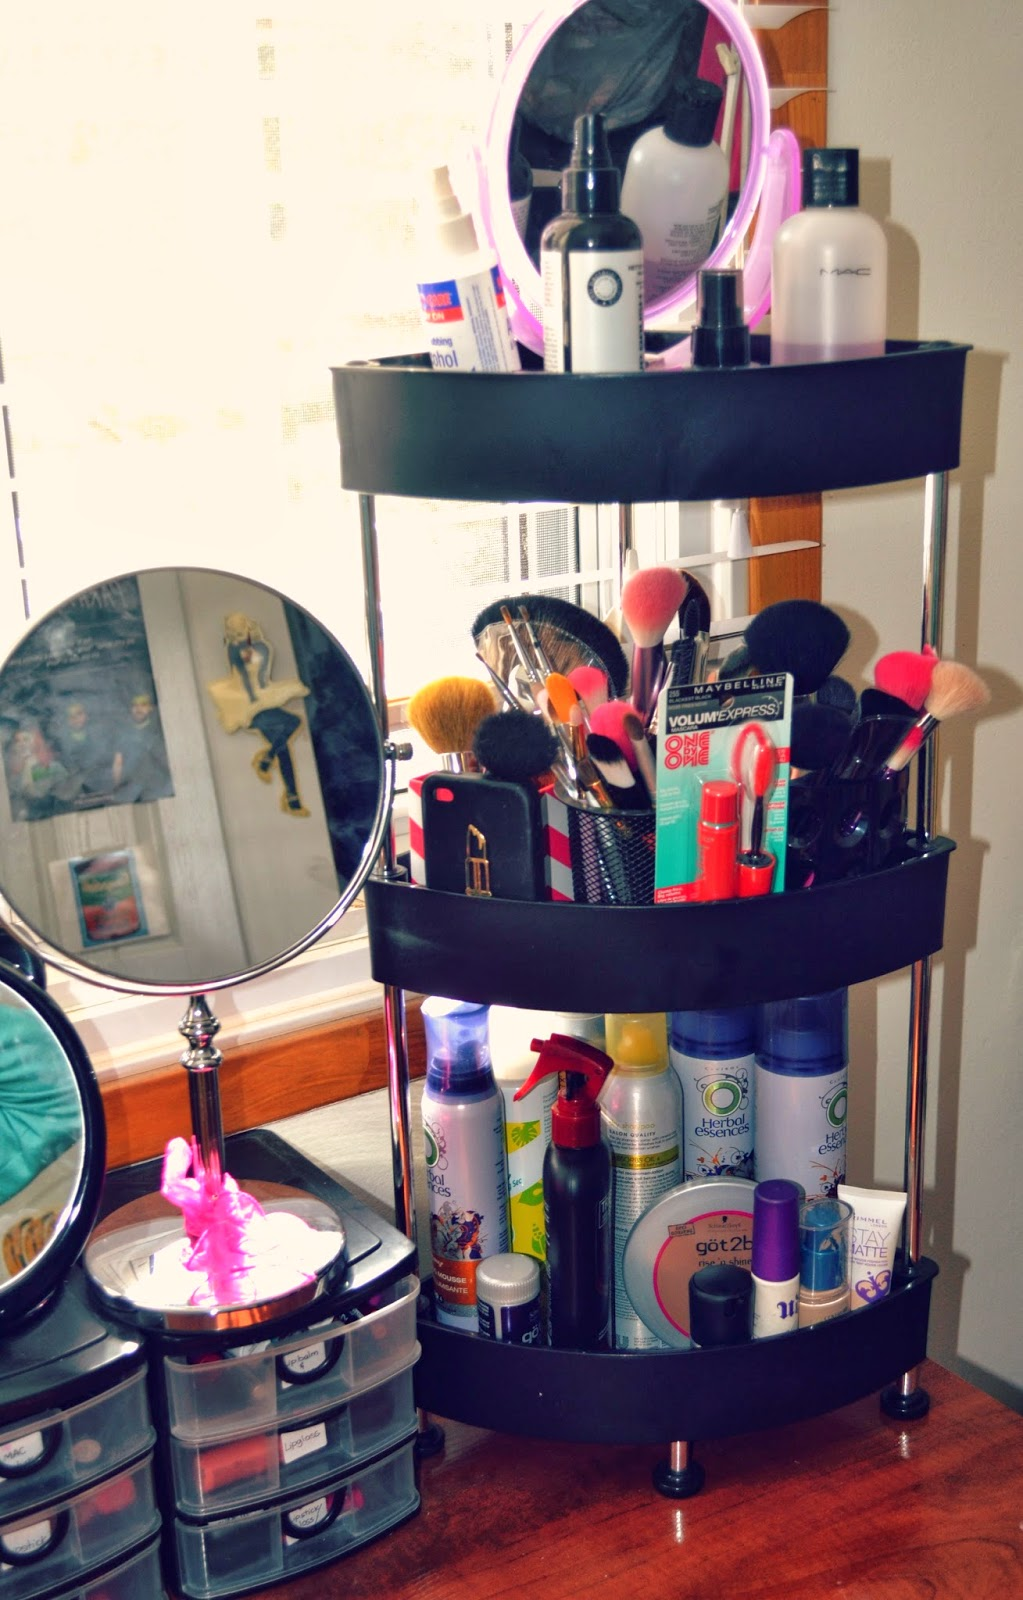 Here Is A More In Depth Look At Whatu0027s Inside My Makeup Containers!